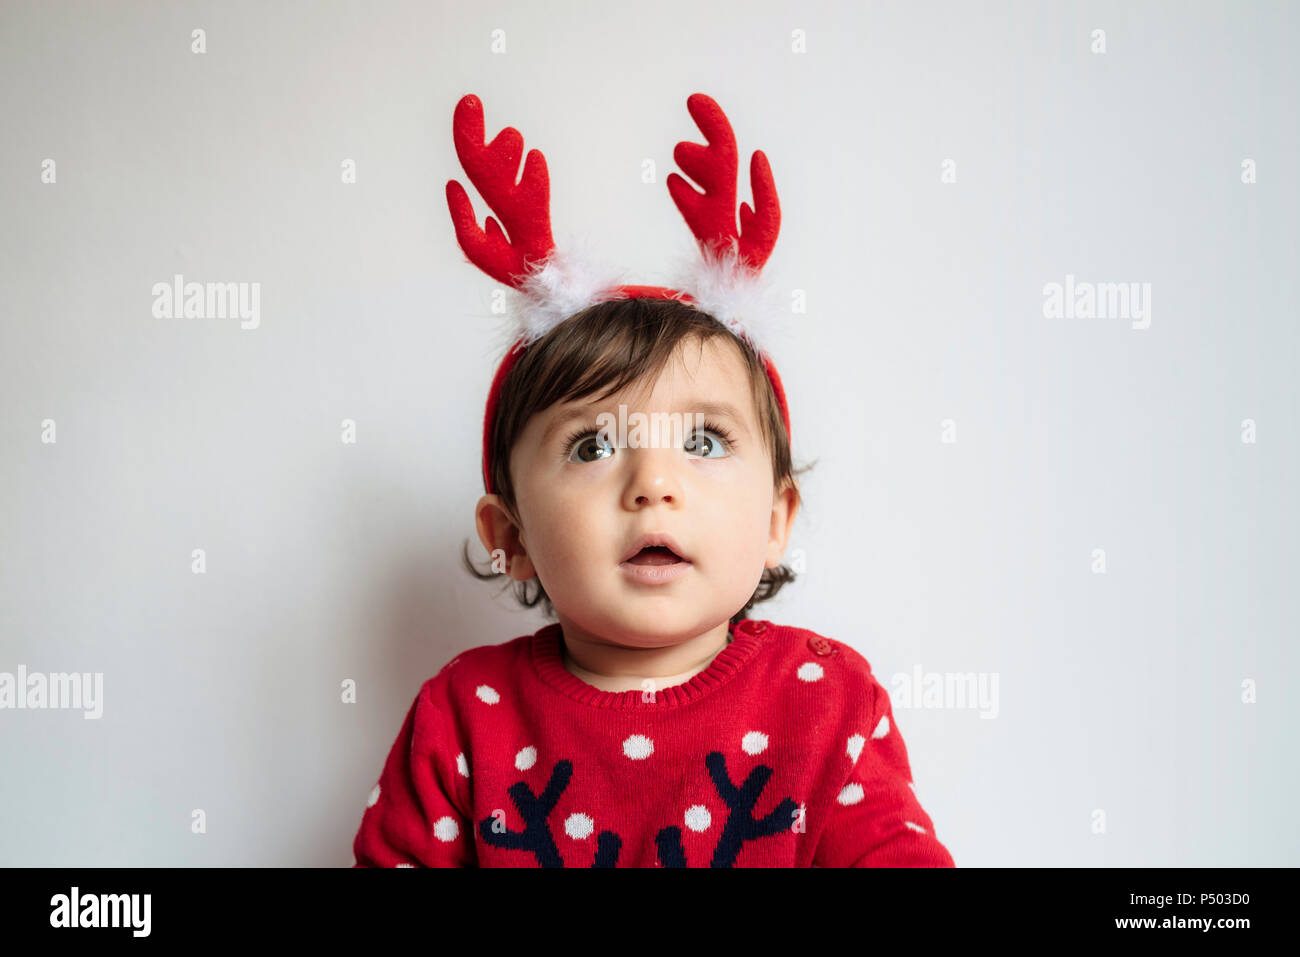 a3dfd43e8f02e Portrait of astonished baby girl wearing reindeer antlers headband - Stock  Image